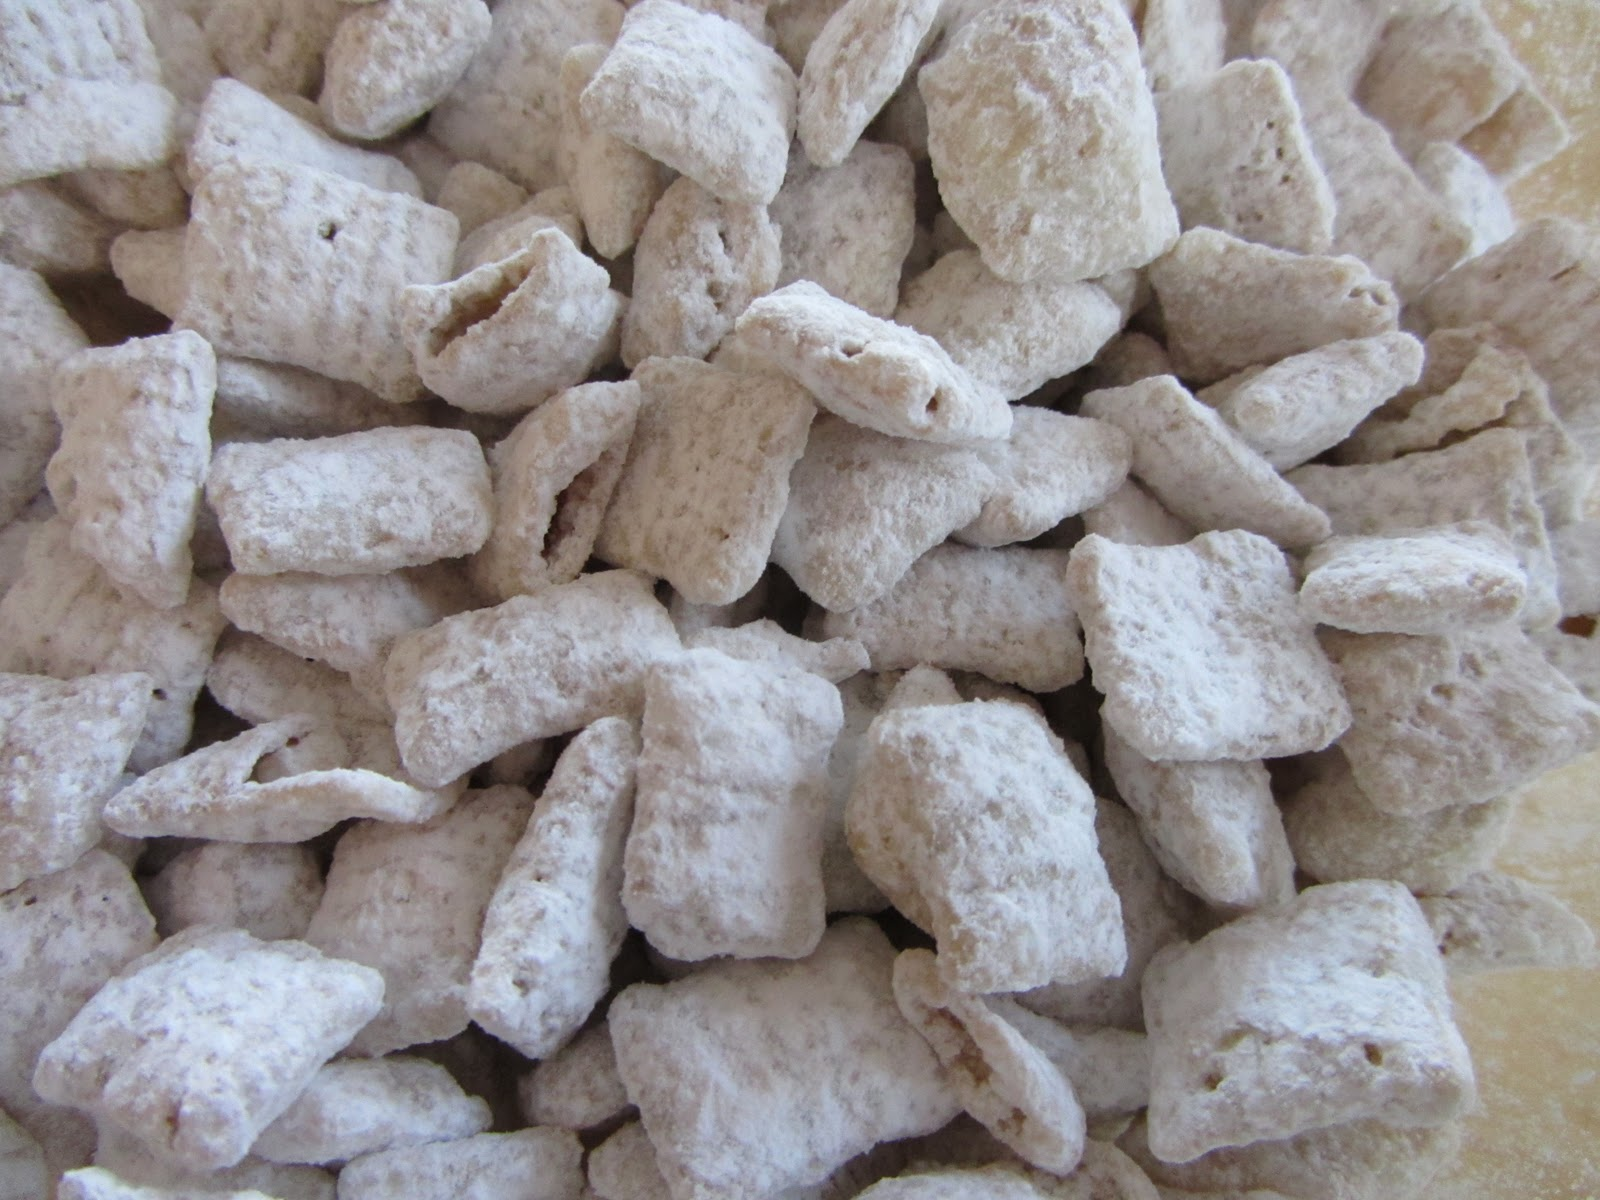 ... gluten free hot chocolate muddy buddies chex muddy buddies gluten free